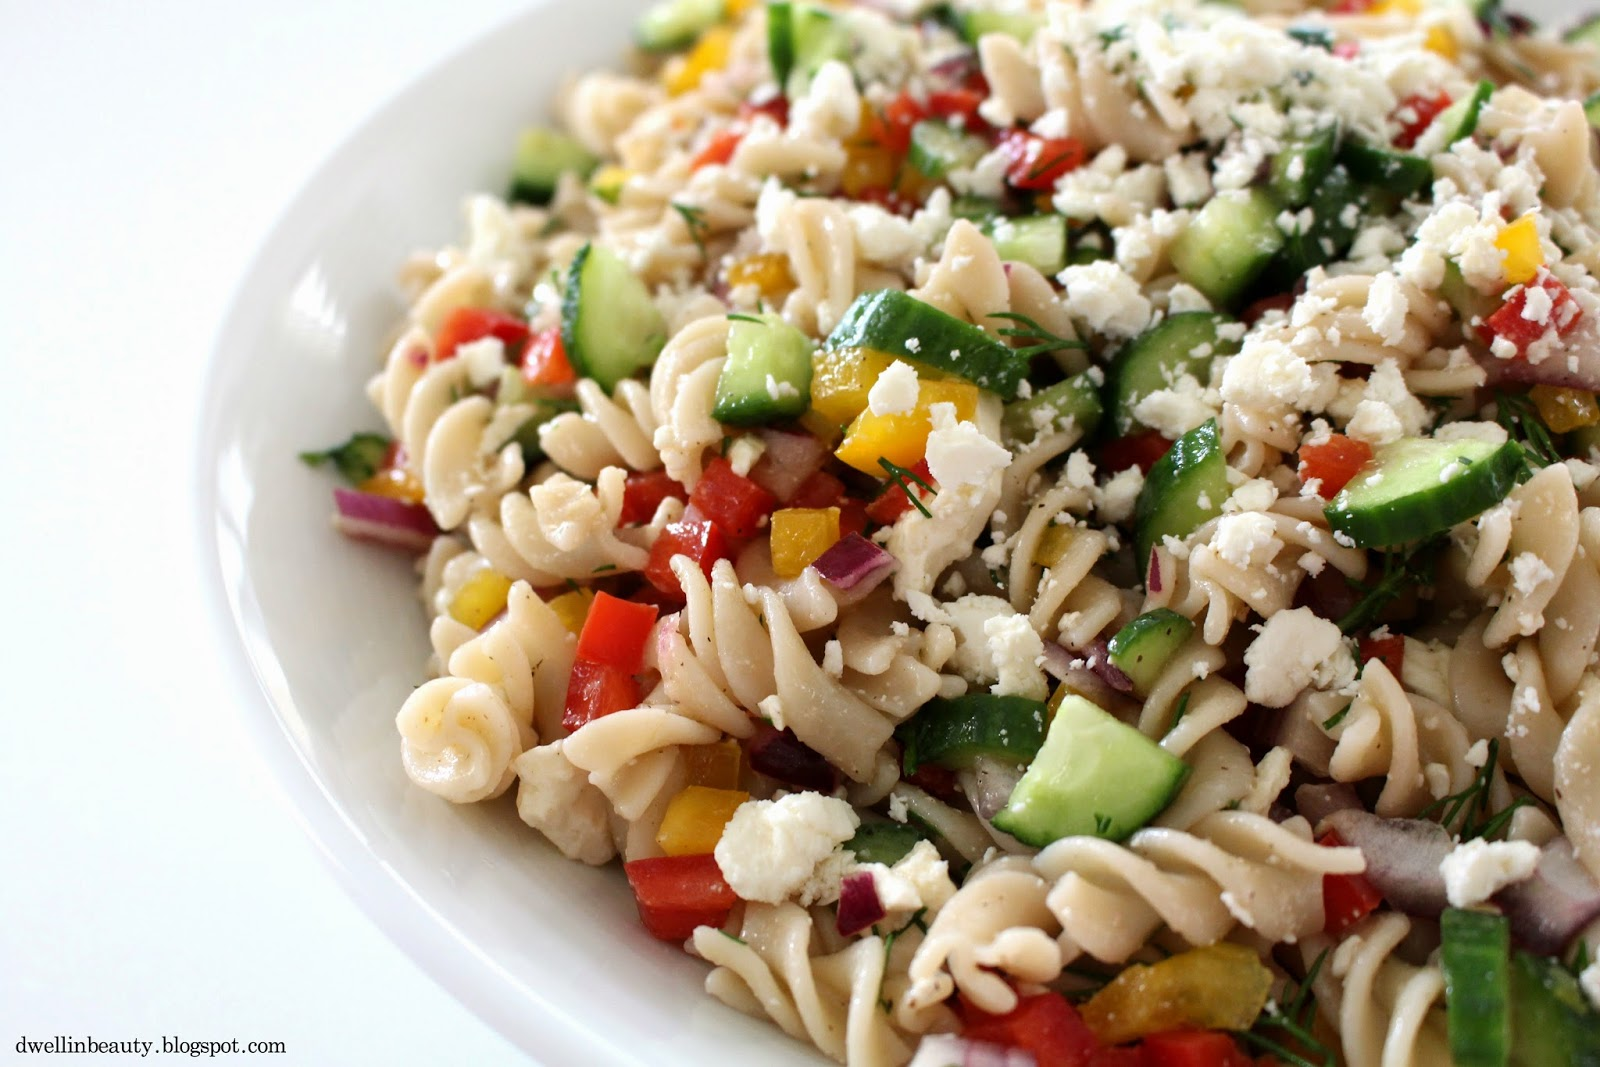 Dwell in Beauty: Dill & Veggie Garden Pasta Salad